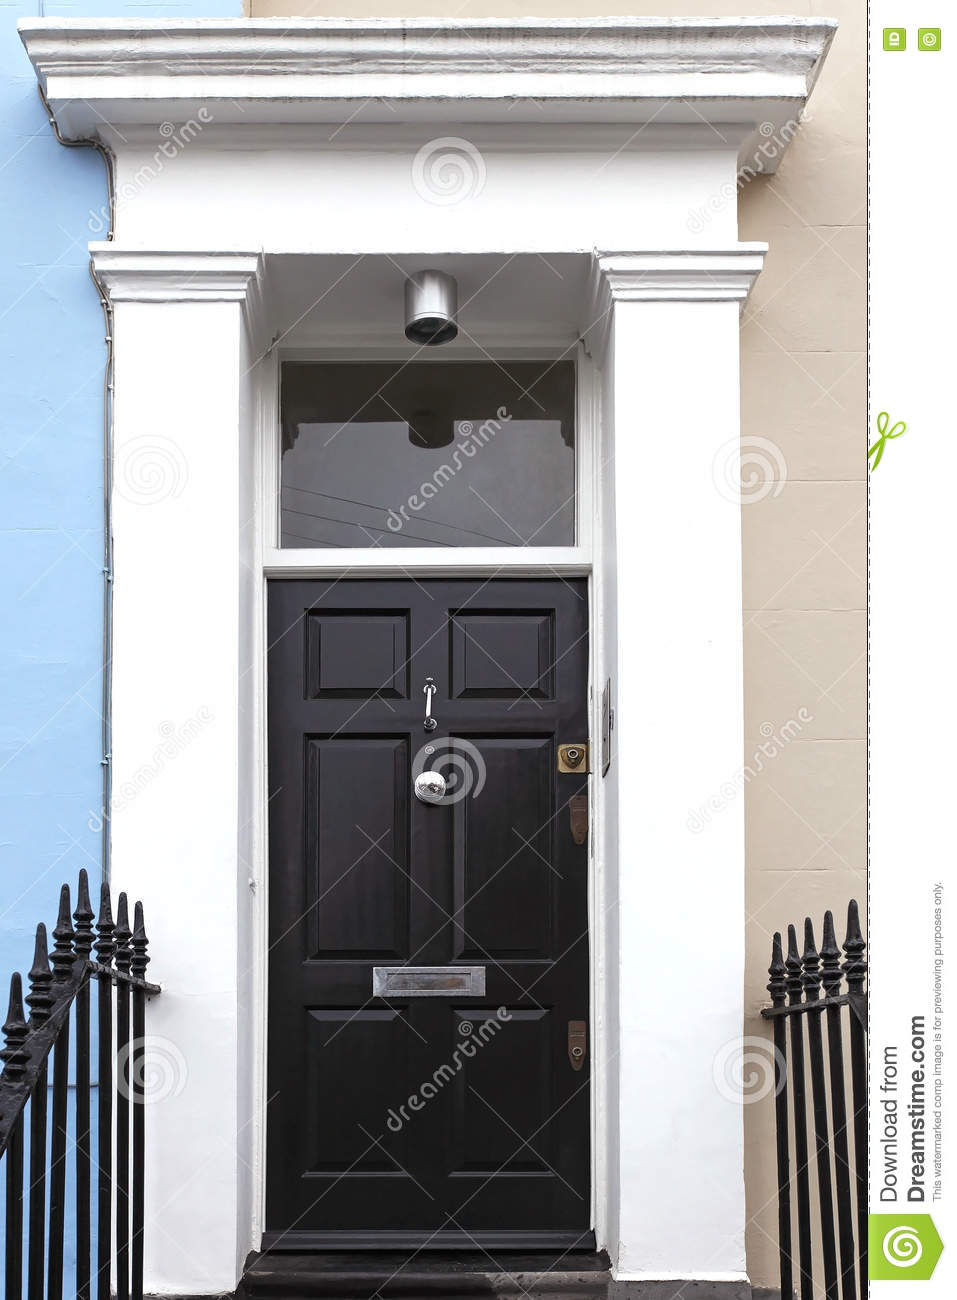 porte d 39 entr e noire photo stock image 70614196